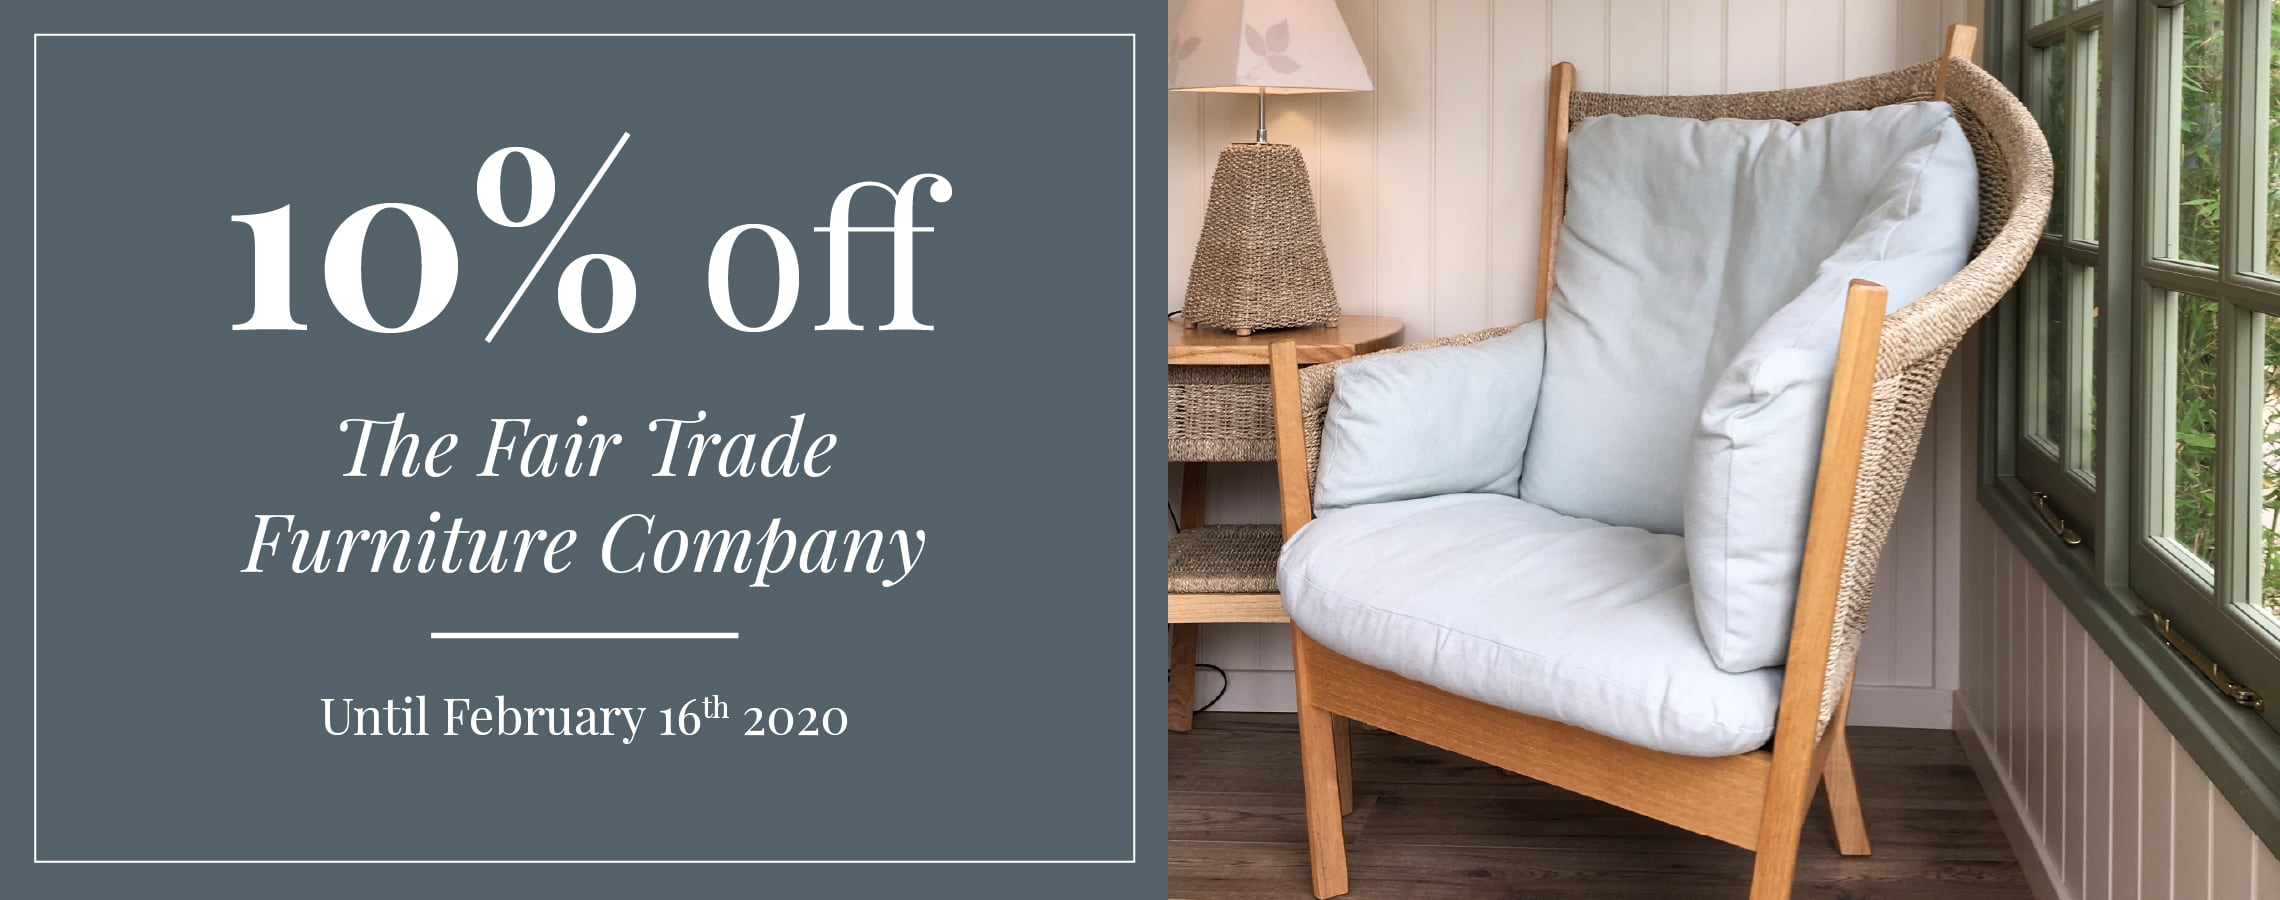 10% off The Fair-trade Furniture Company Sale